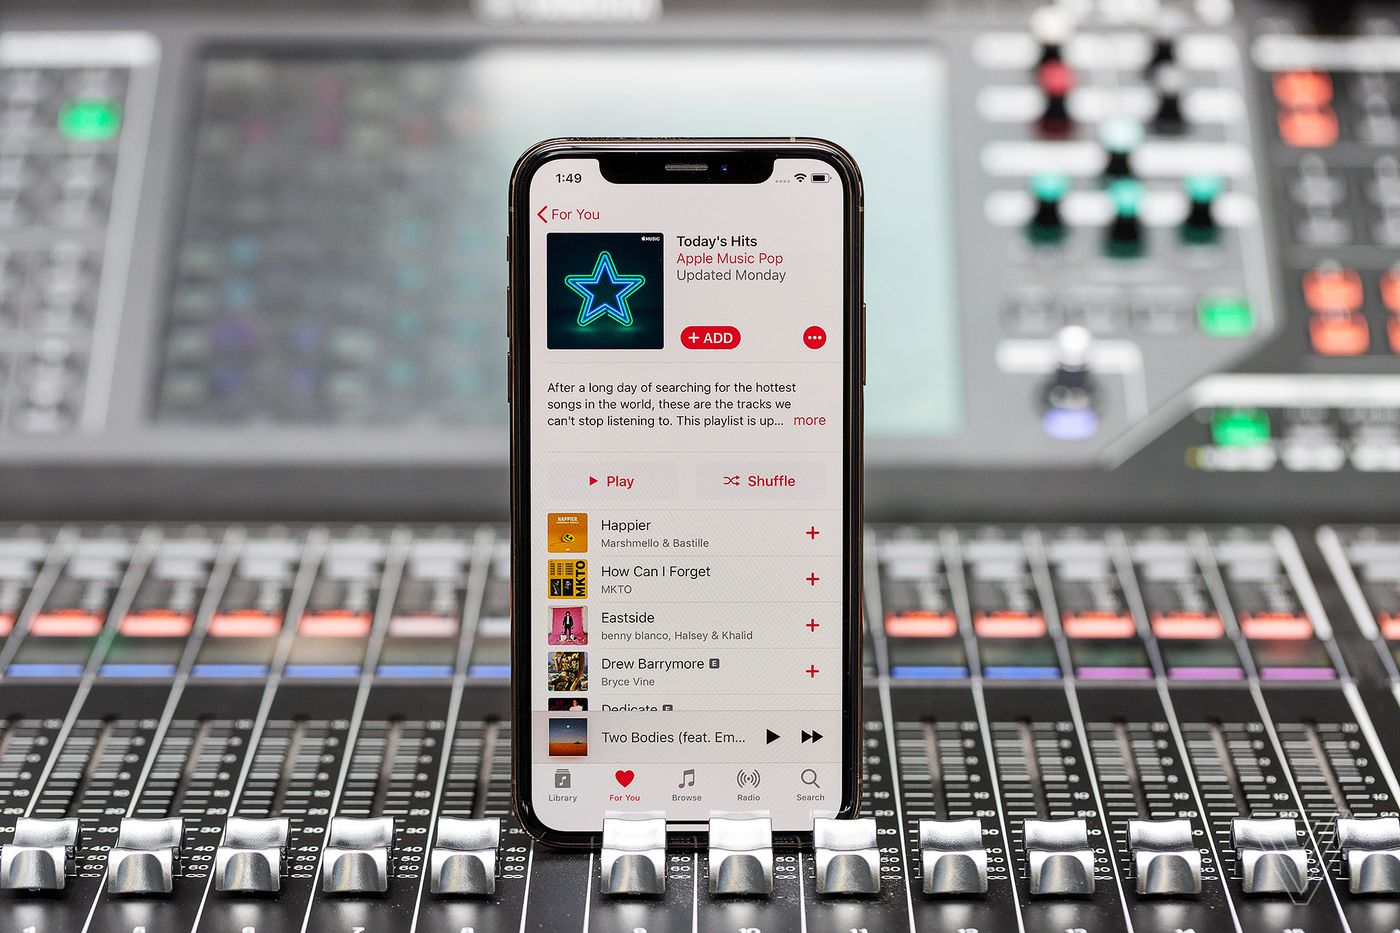 Youtube Music Sound Quality